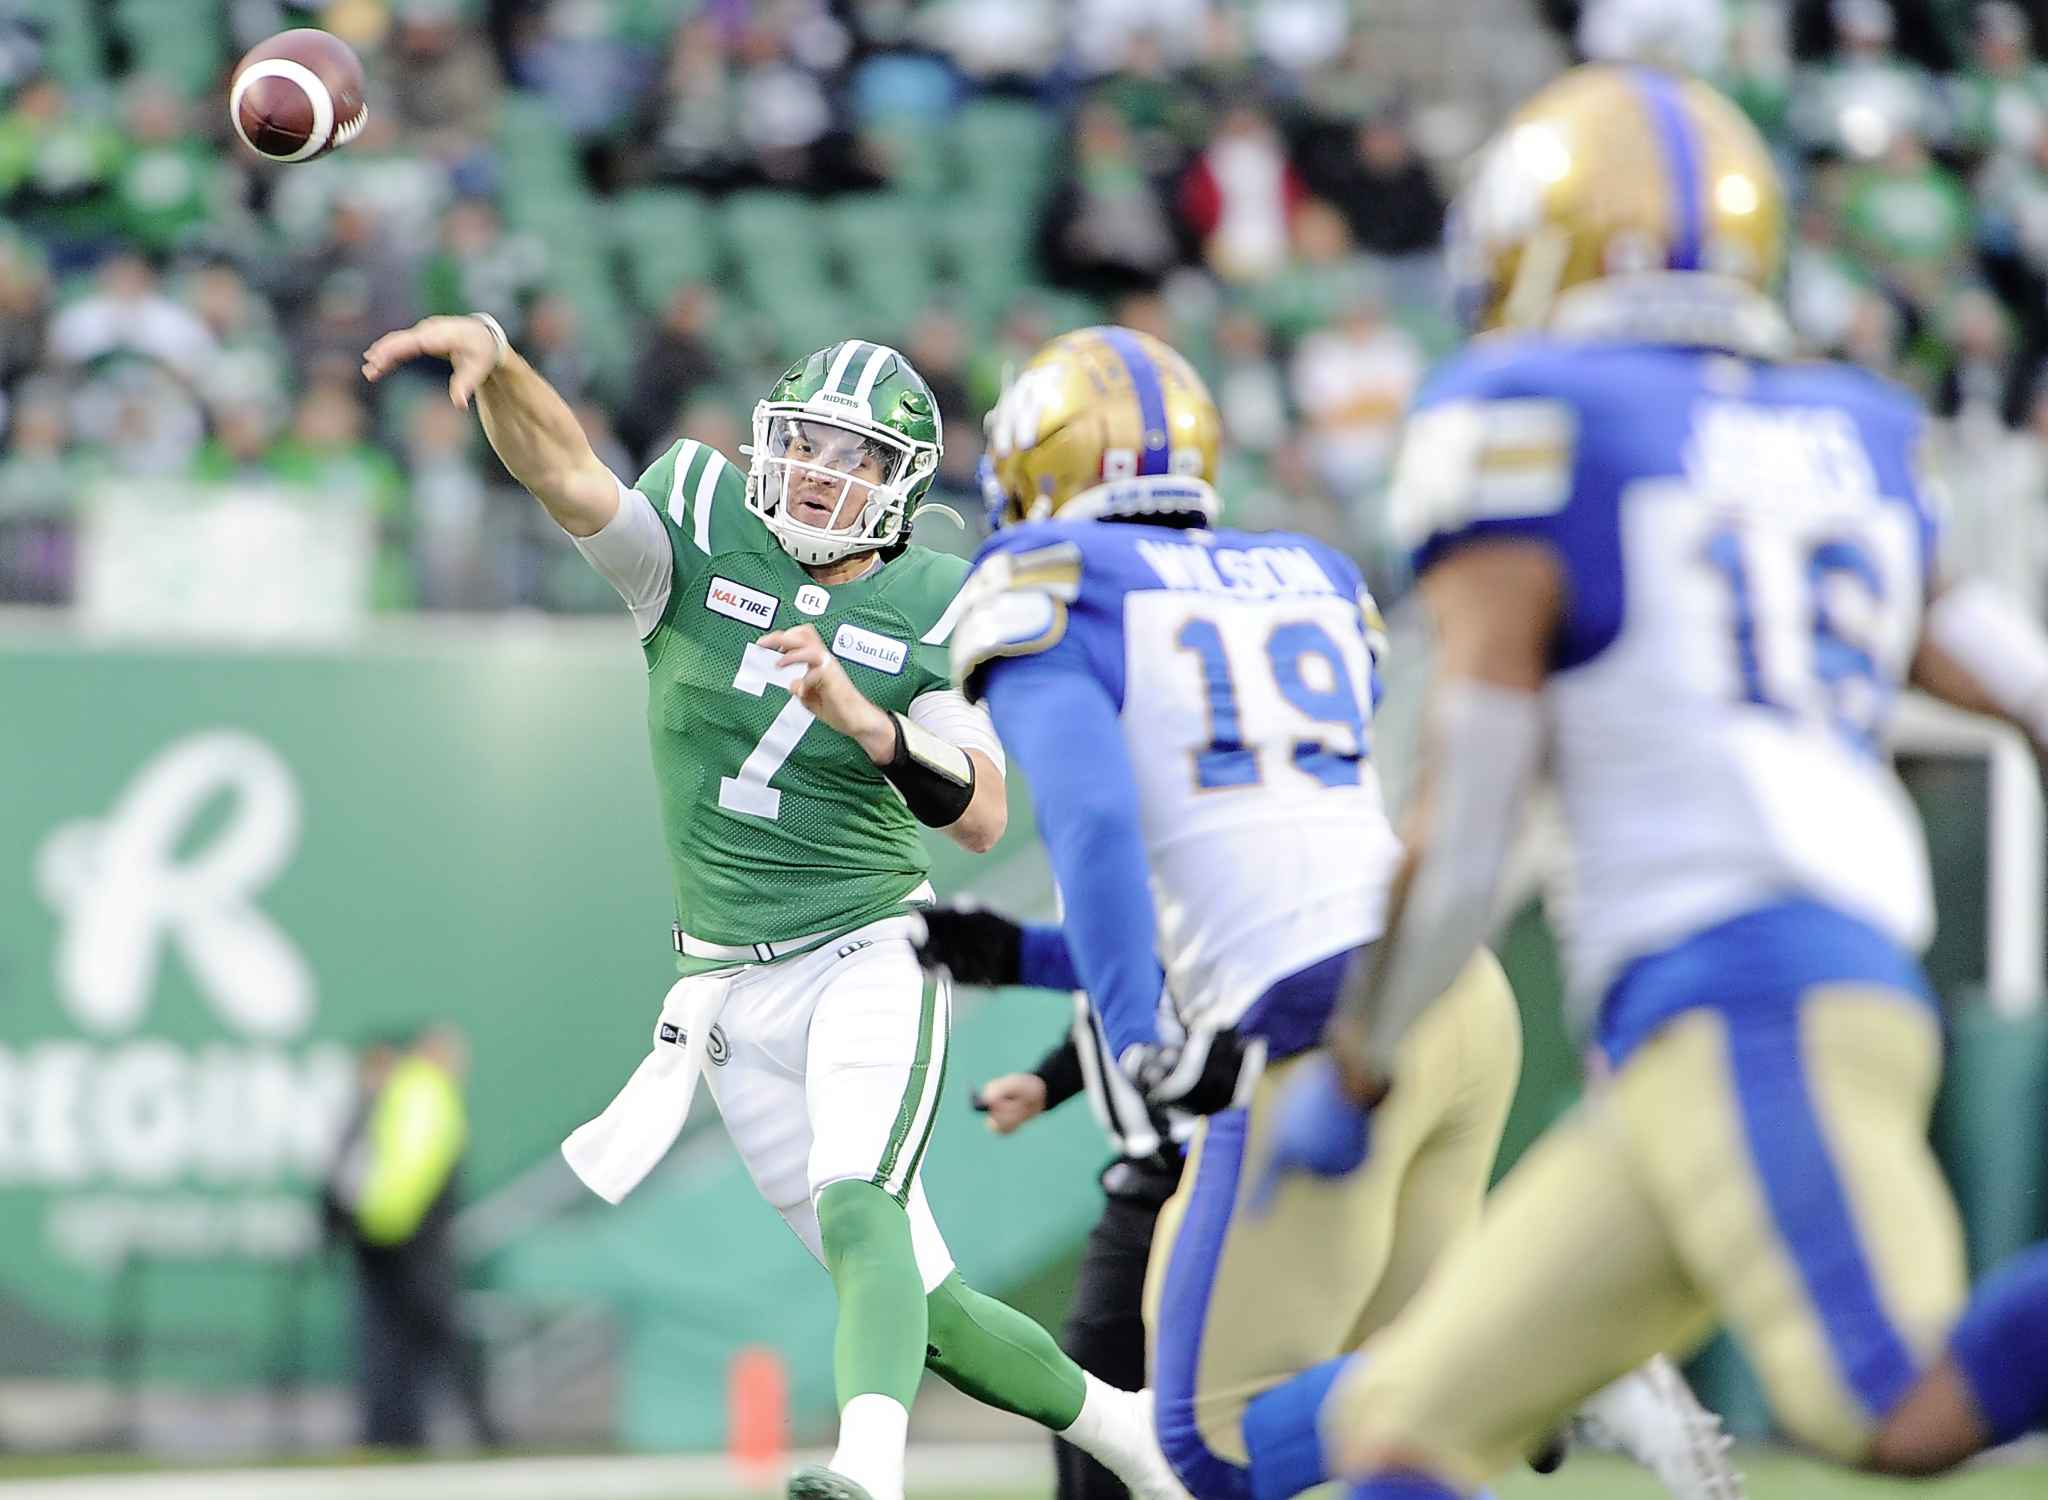 MARK TAYLOR / THE CANADIAN PRESS</p><p>Saskatchewan Roughriders quarterback Cody Fajardo attempts a pass on the run against the Winnipeg Blue Bombers during first half action.</p>